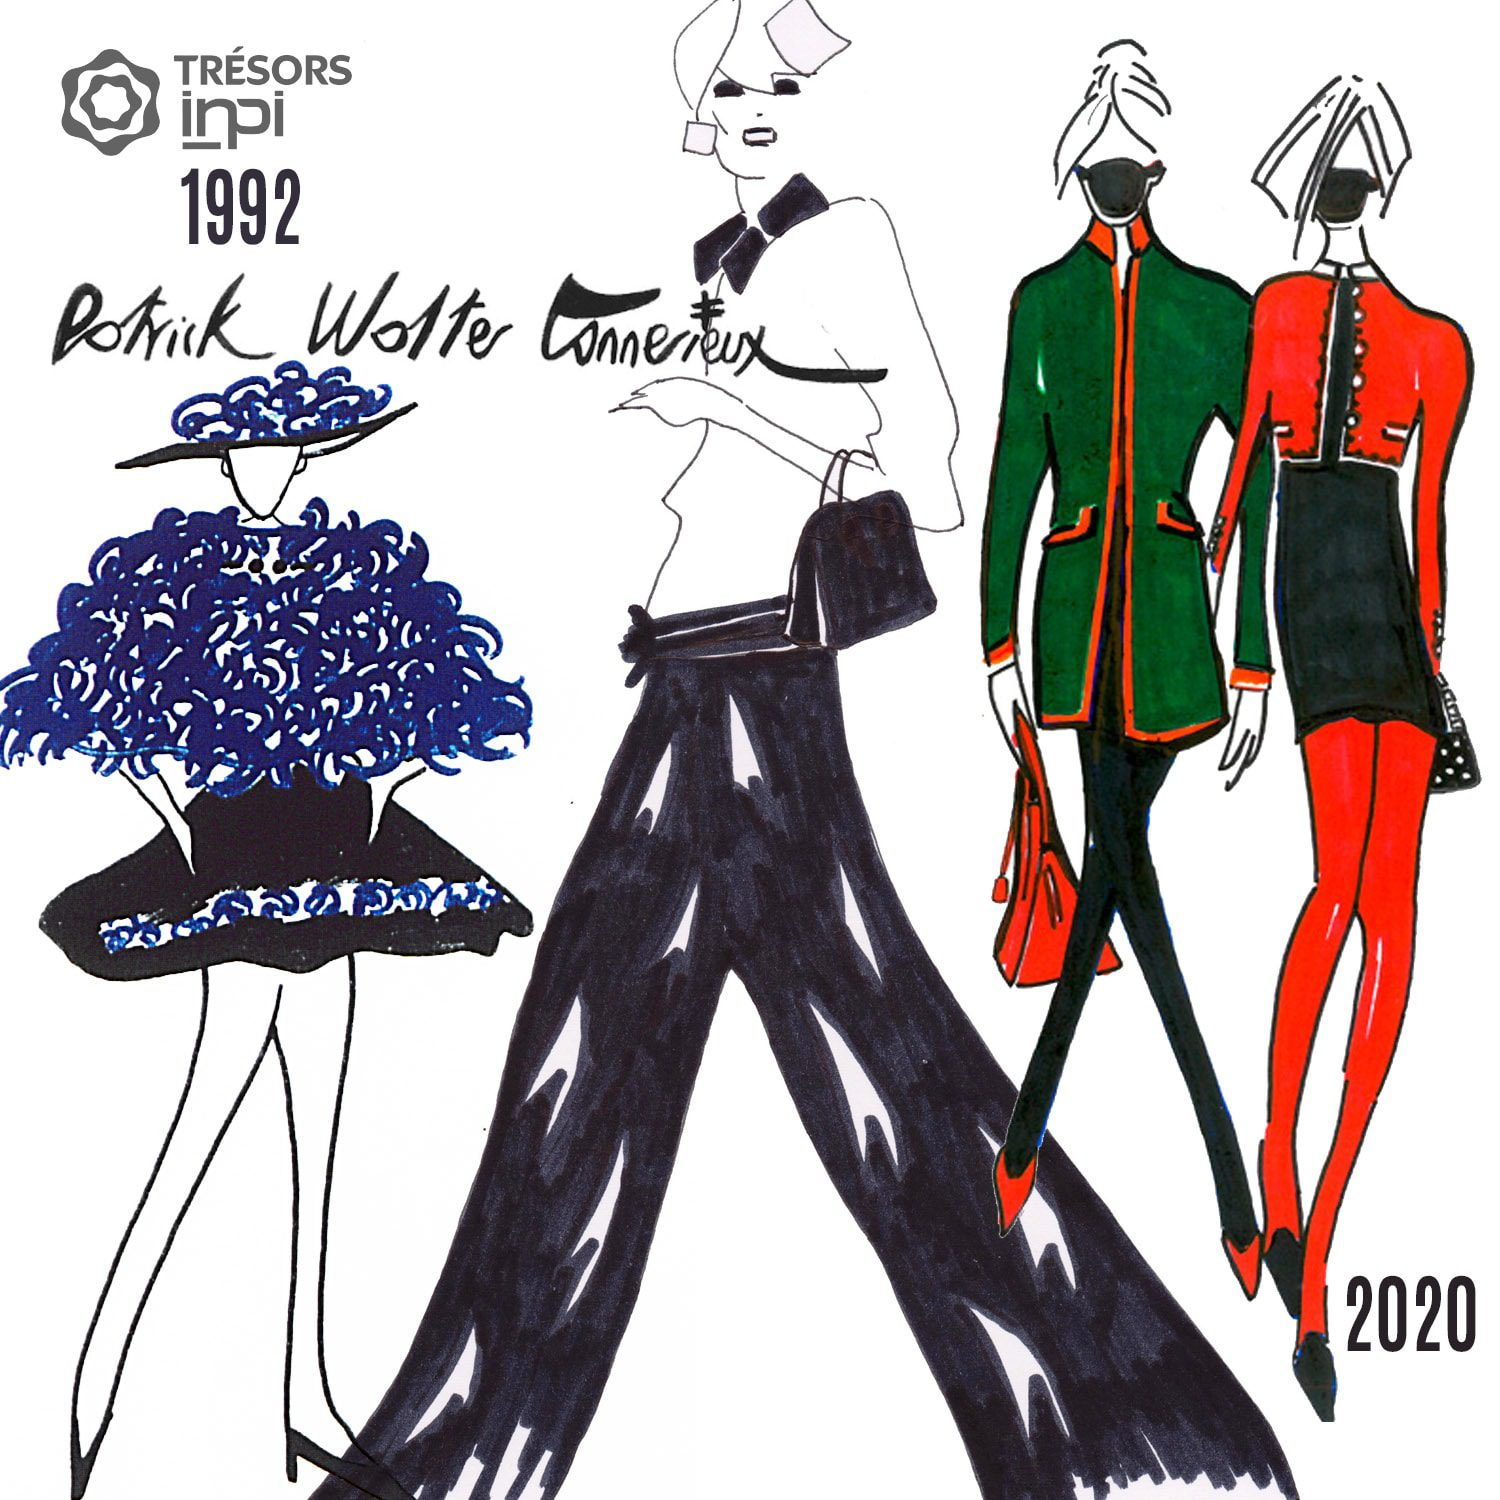 Patrick Tonnerieux 1992-2020 fashion inventions - INPI archives